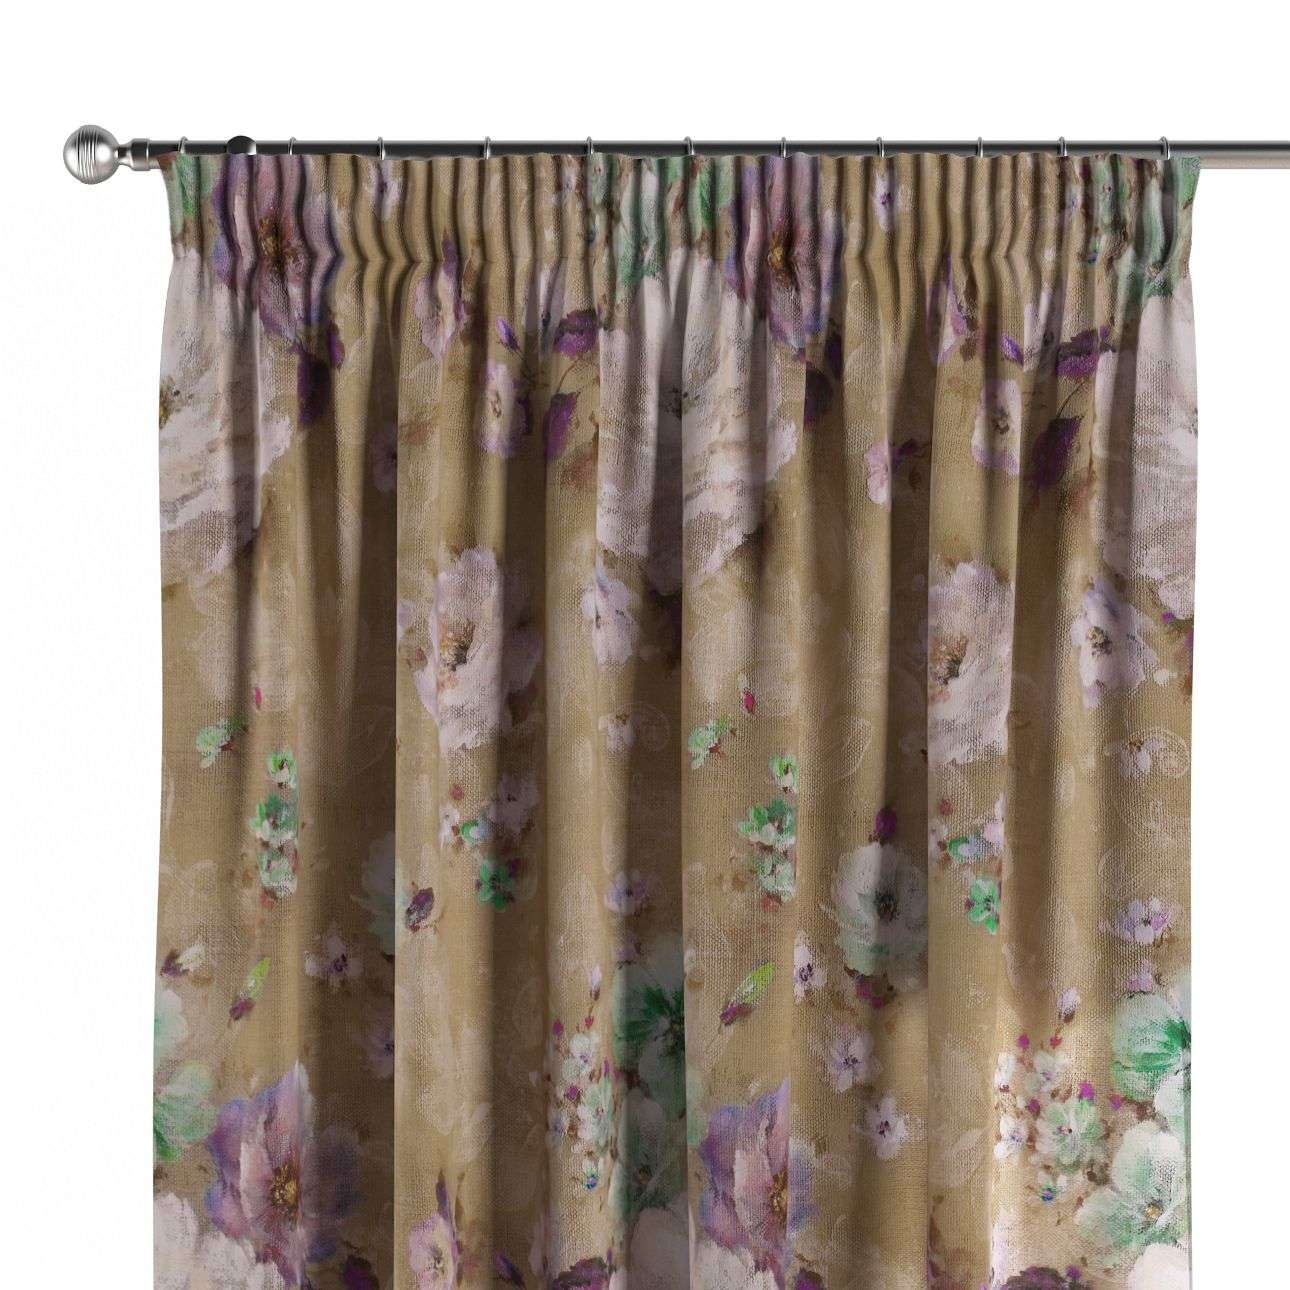 Pencil pleat curtains in collection Monet, fabric: 137-82